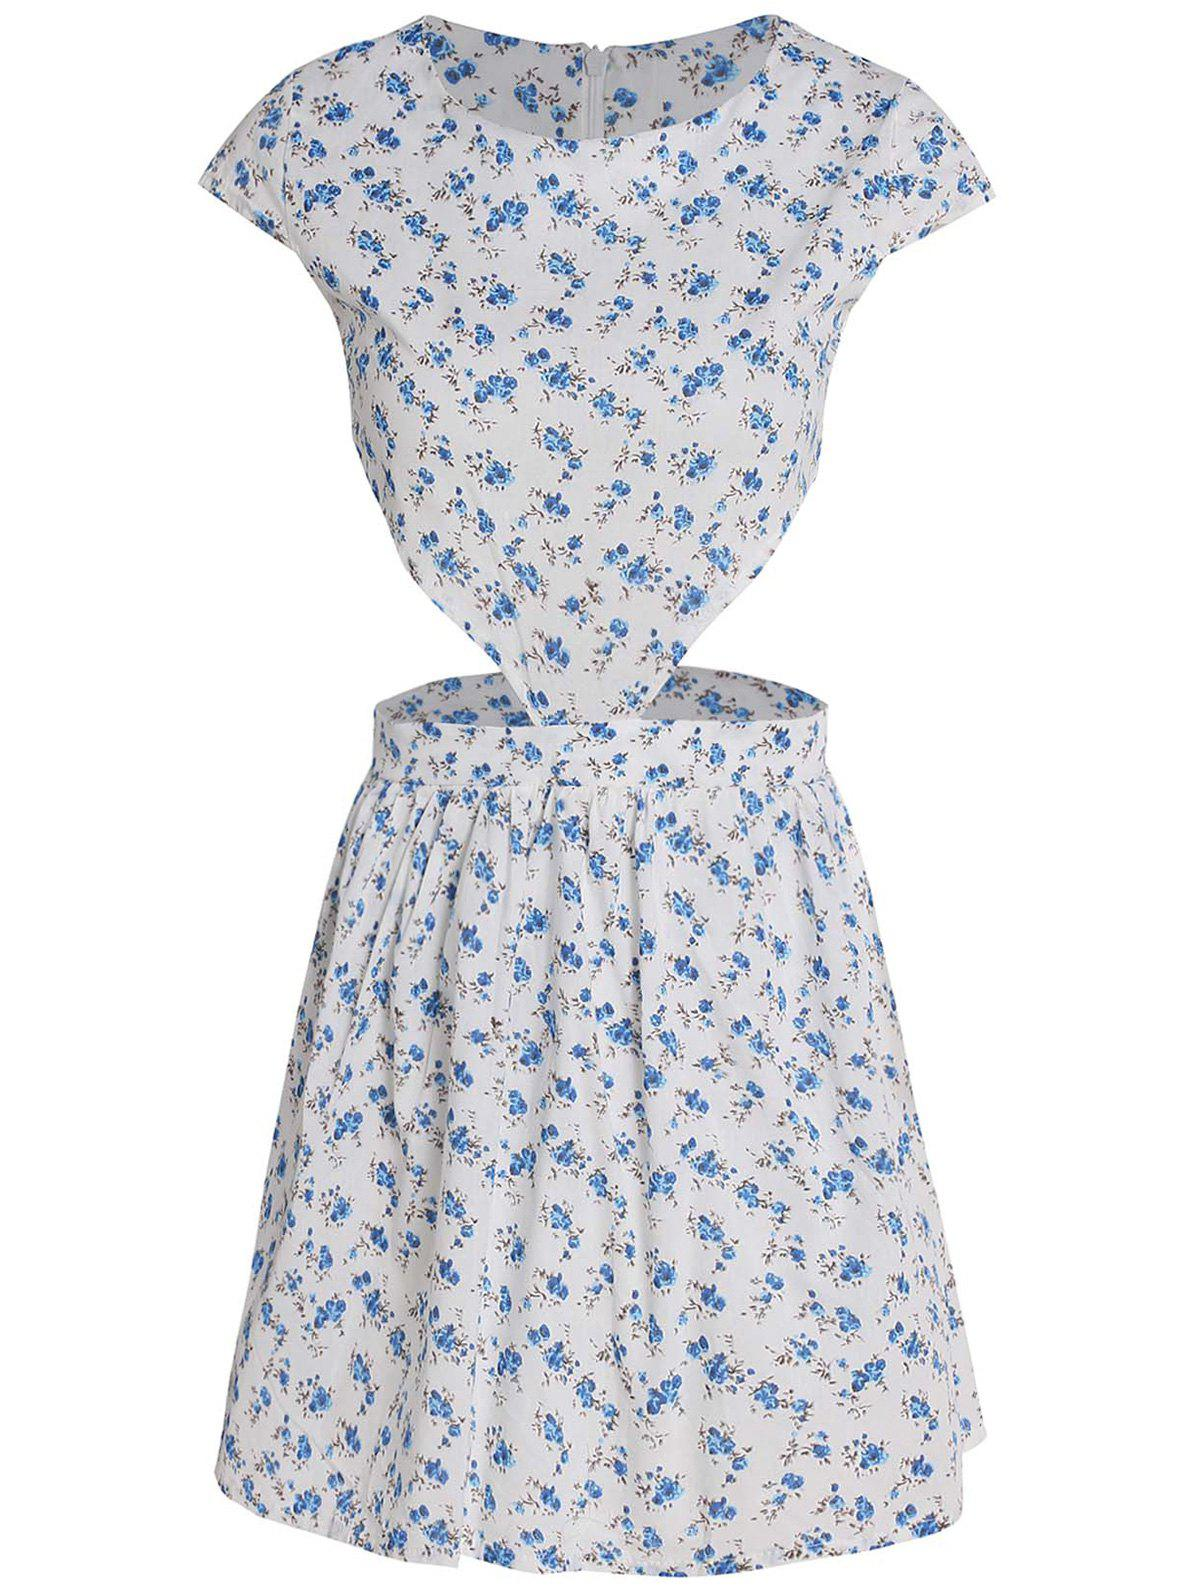 Cute Women's Round Collar Tiny Floral Print Short Sleeve Dress - S WHITE